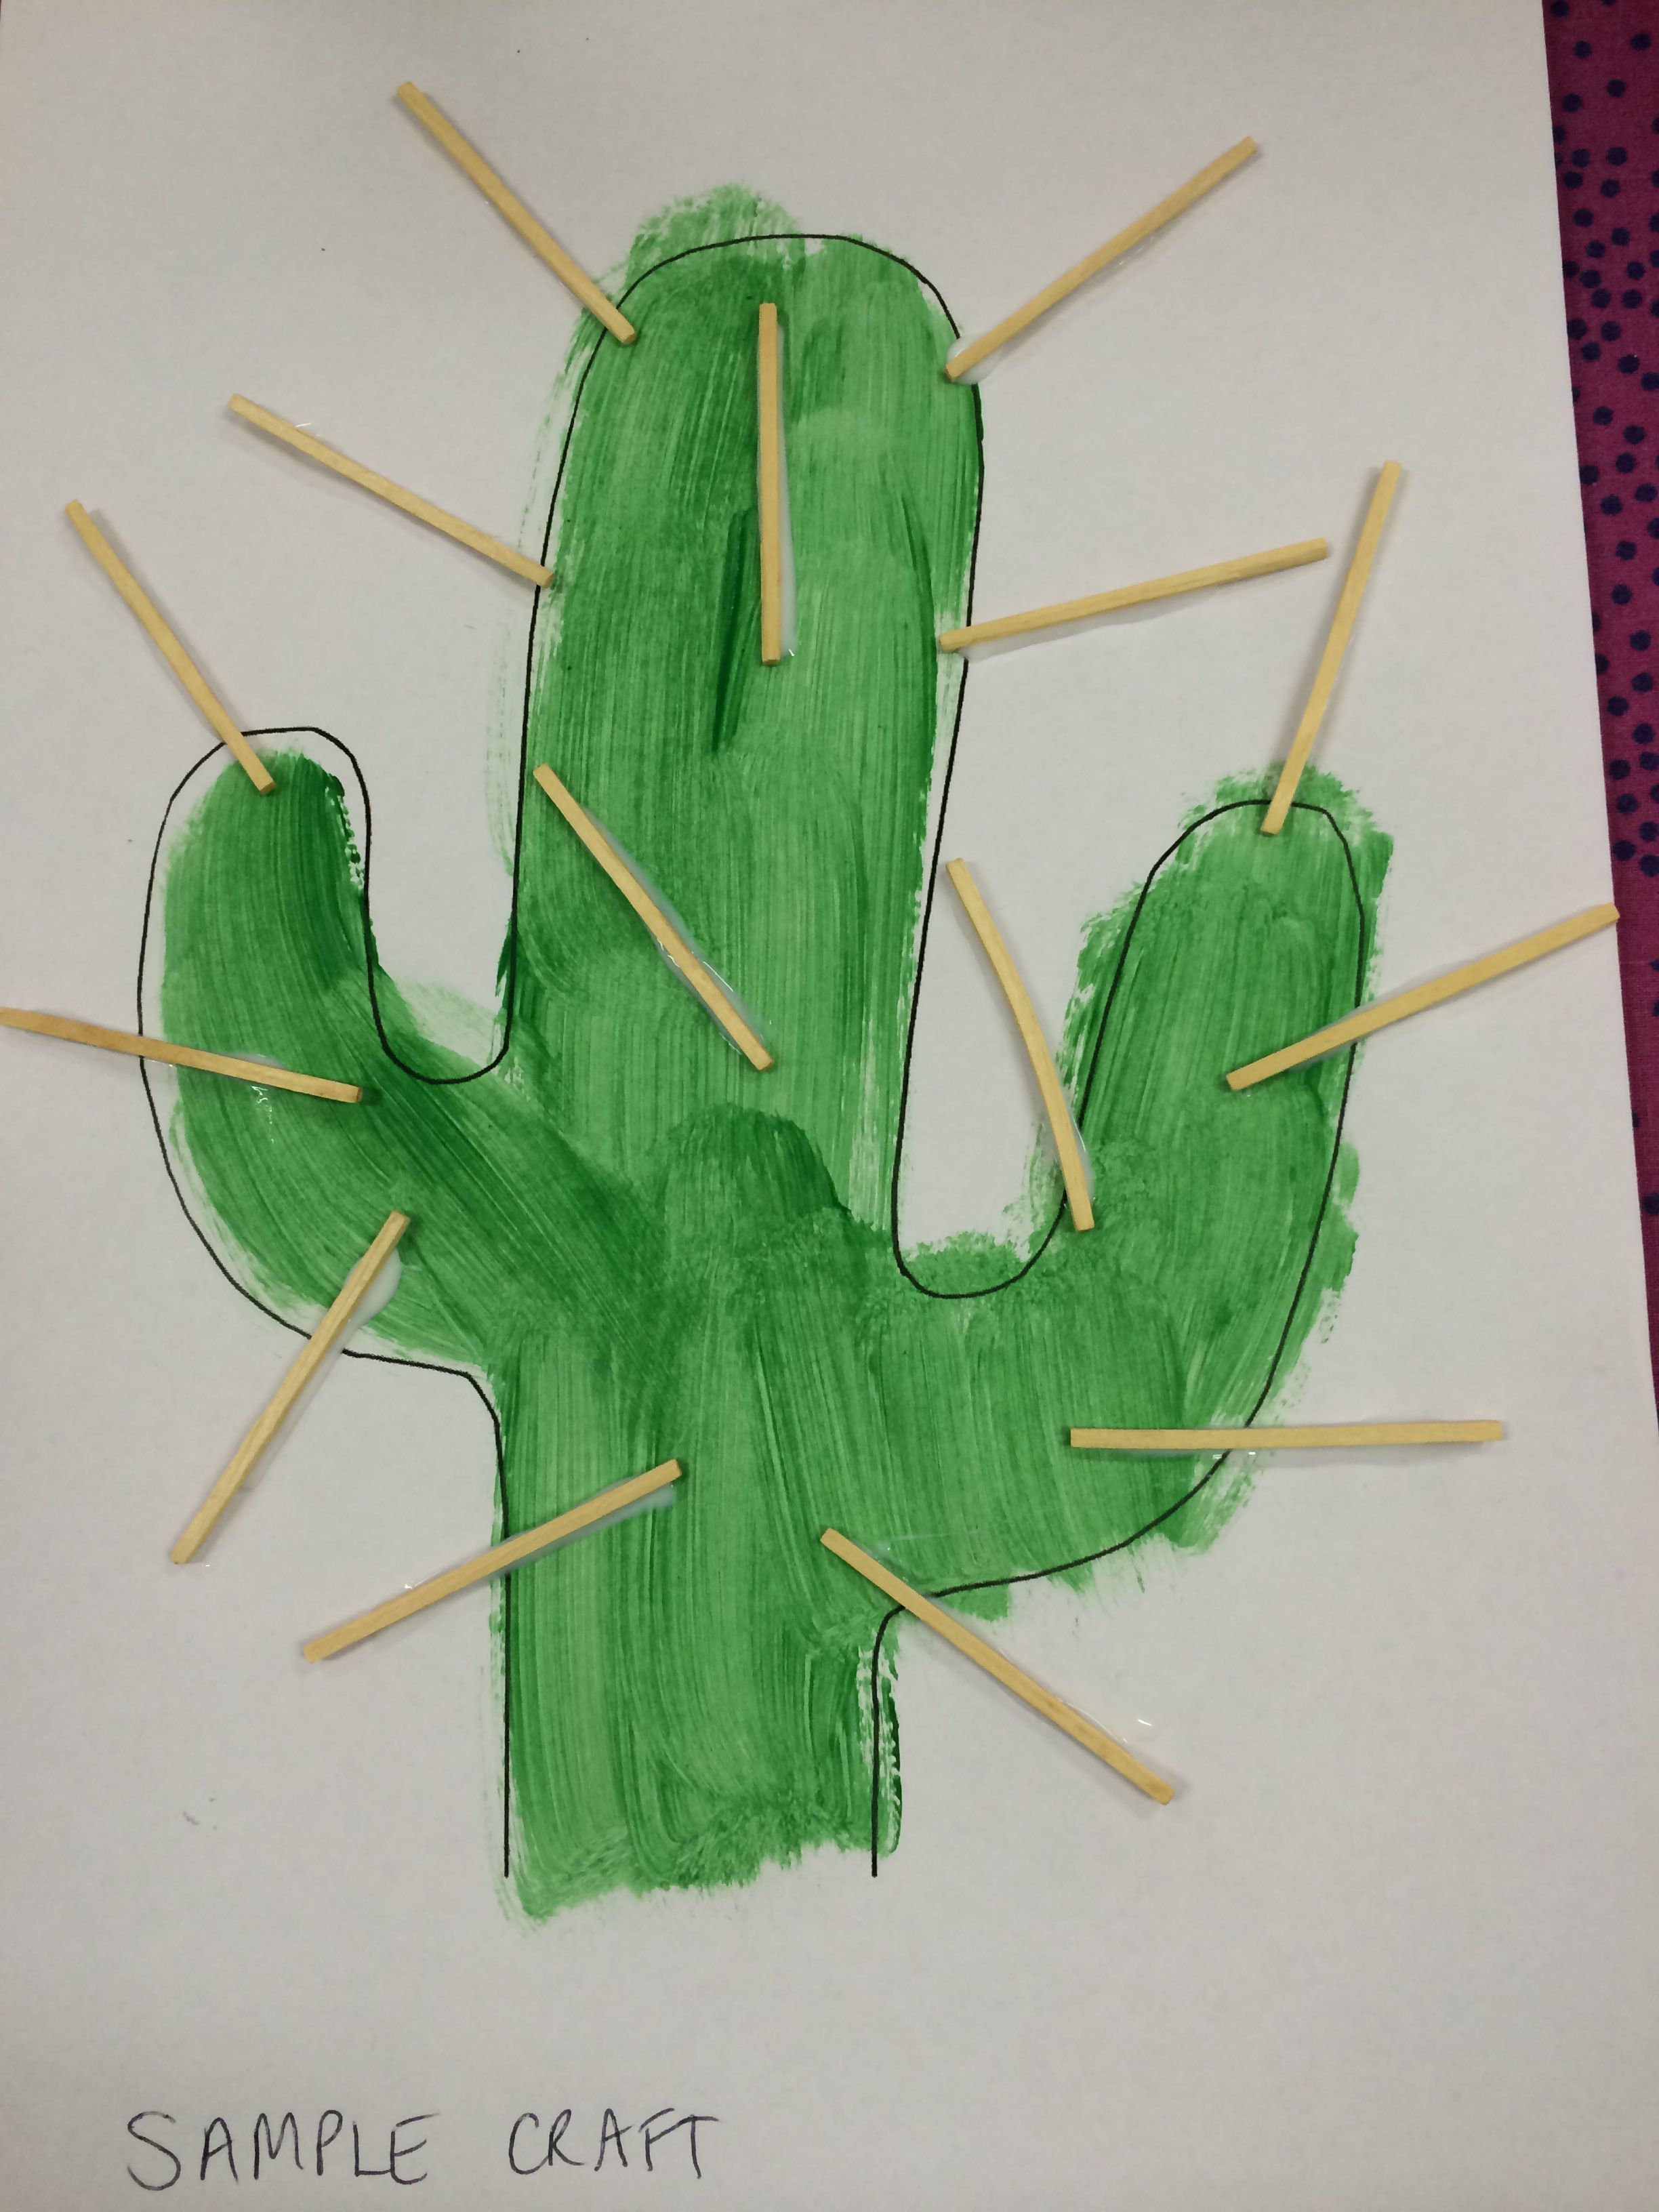 Wild West Craft Made By Painting A Cactus Template Gluing